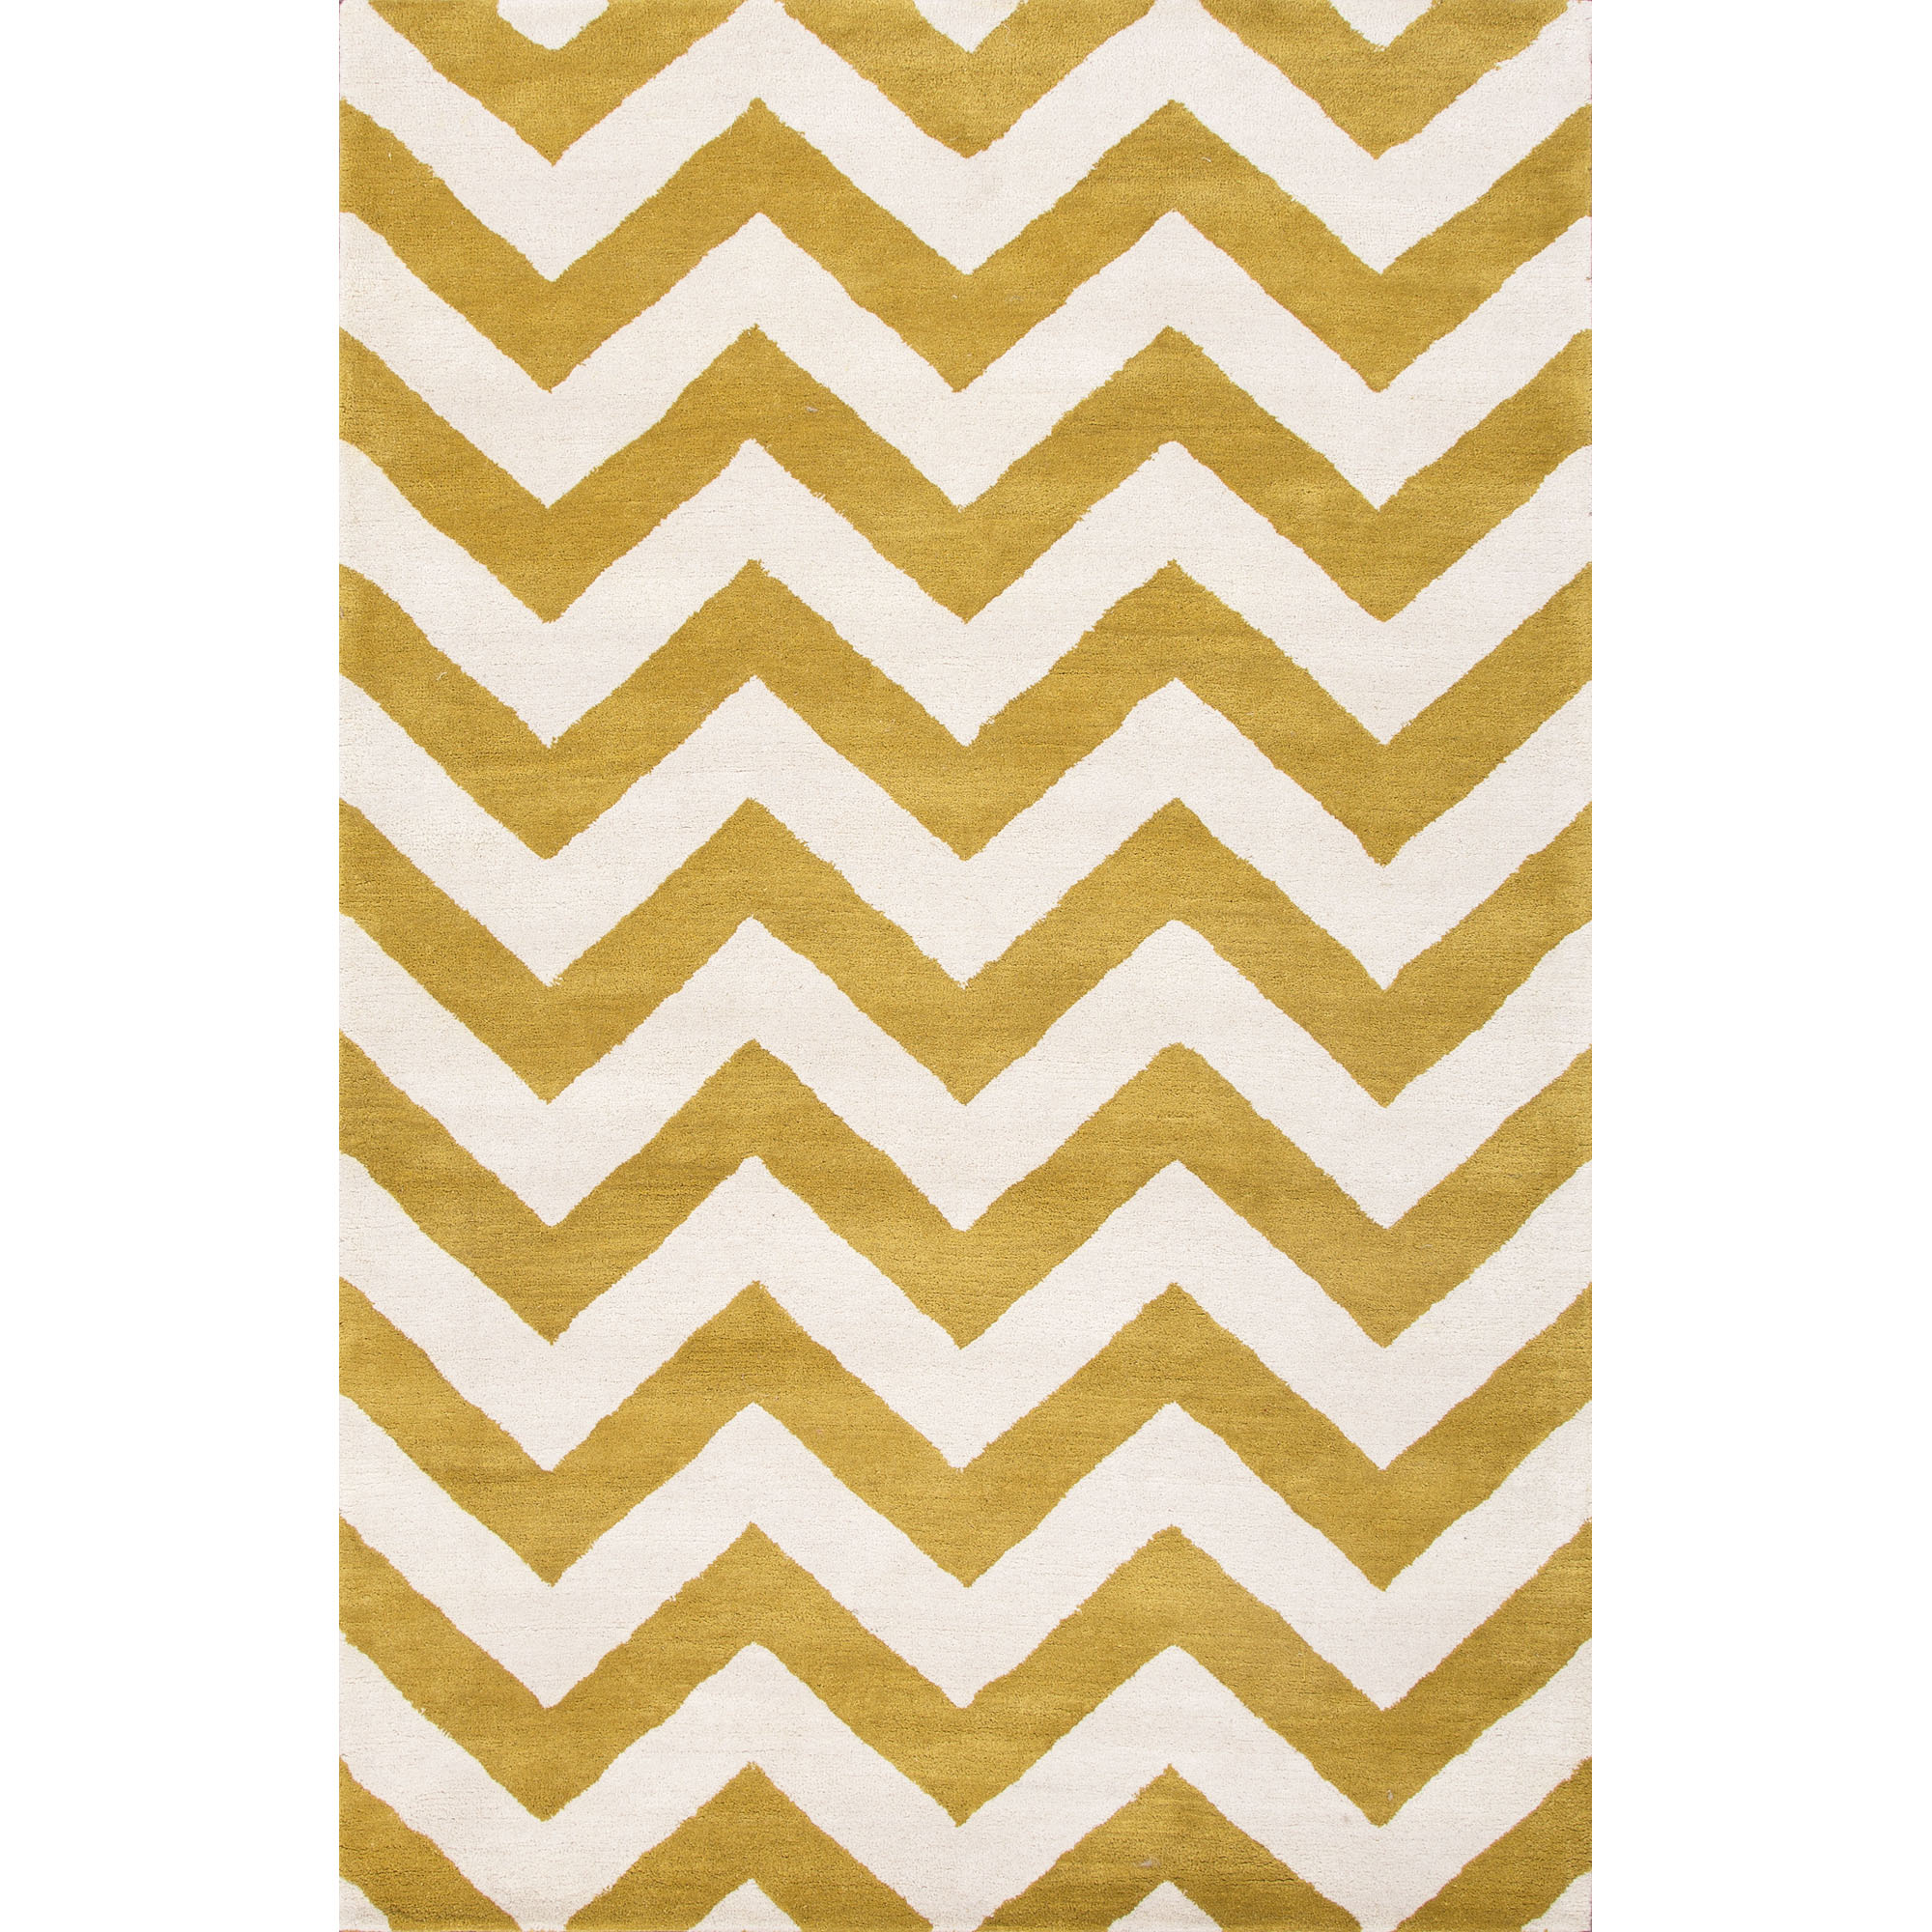 Traverse 2 x 3 Rug by JAIPUR Rugs at Malouf Furniture Co.